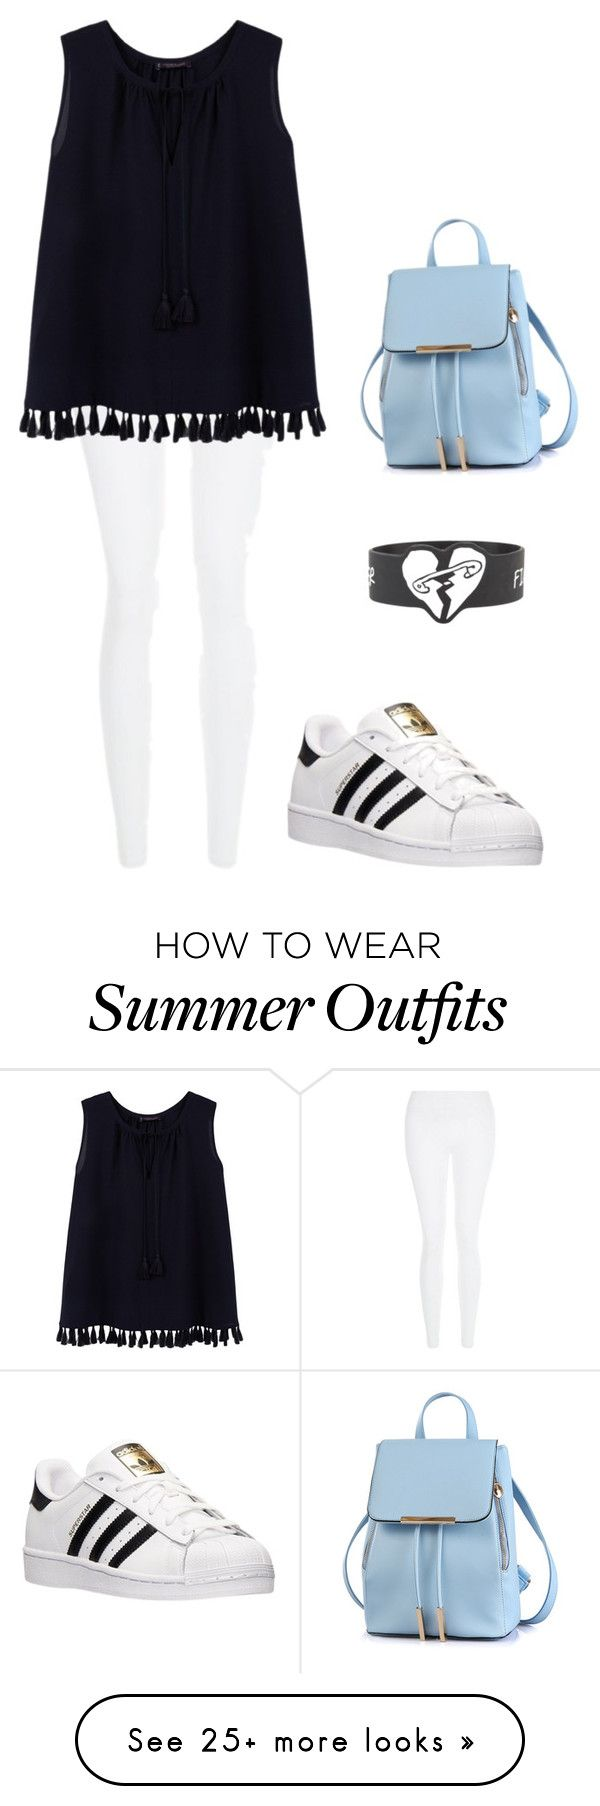 """My First Polyvore Outfit"" by shekoooh777 on Polyvore featuring New Look, Violeta by Mango and adidas"